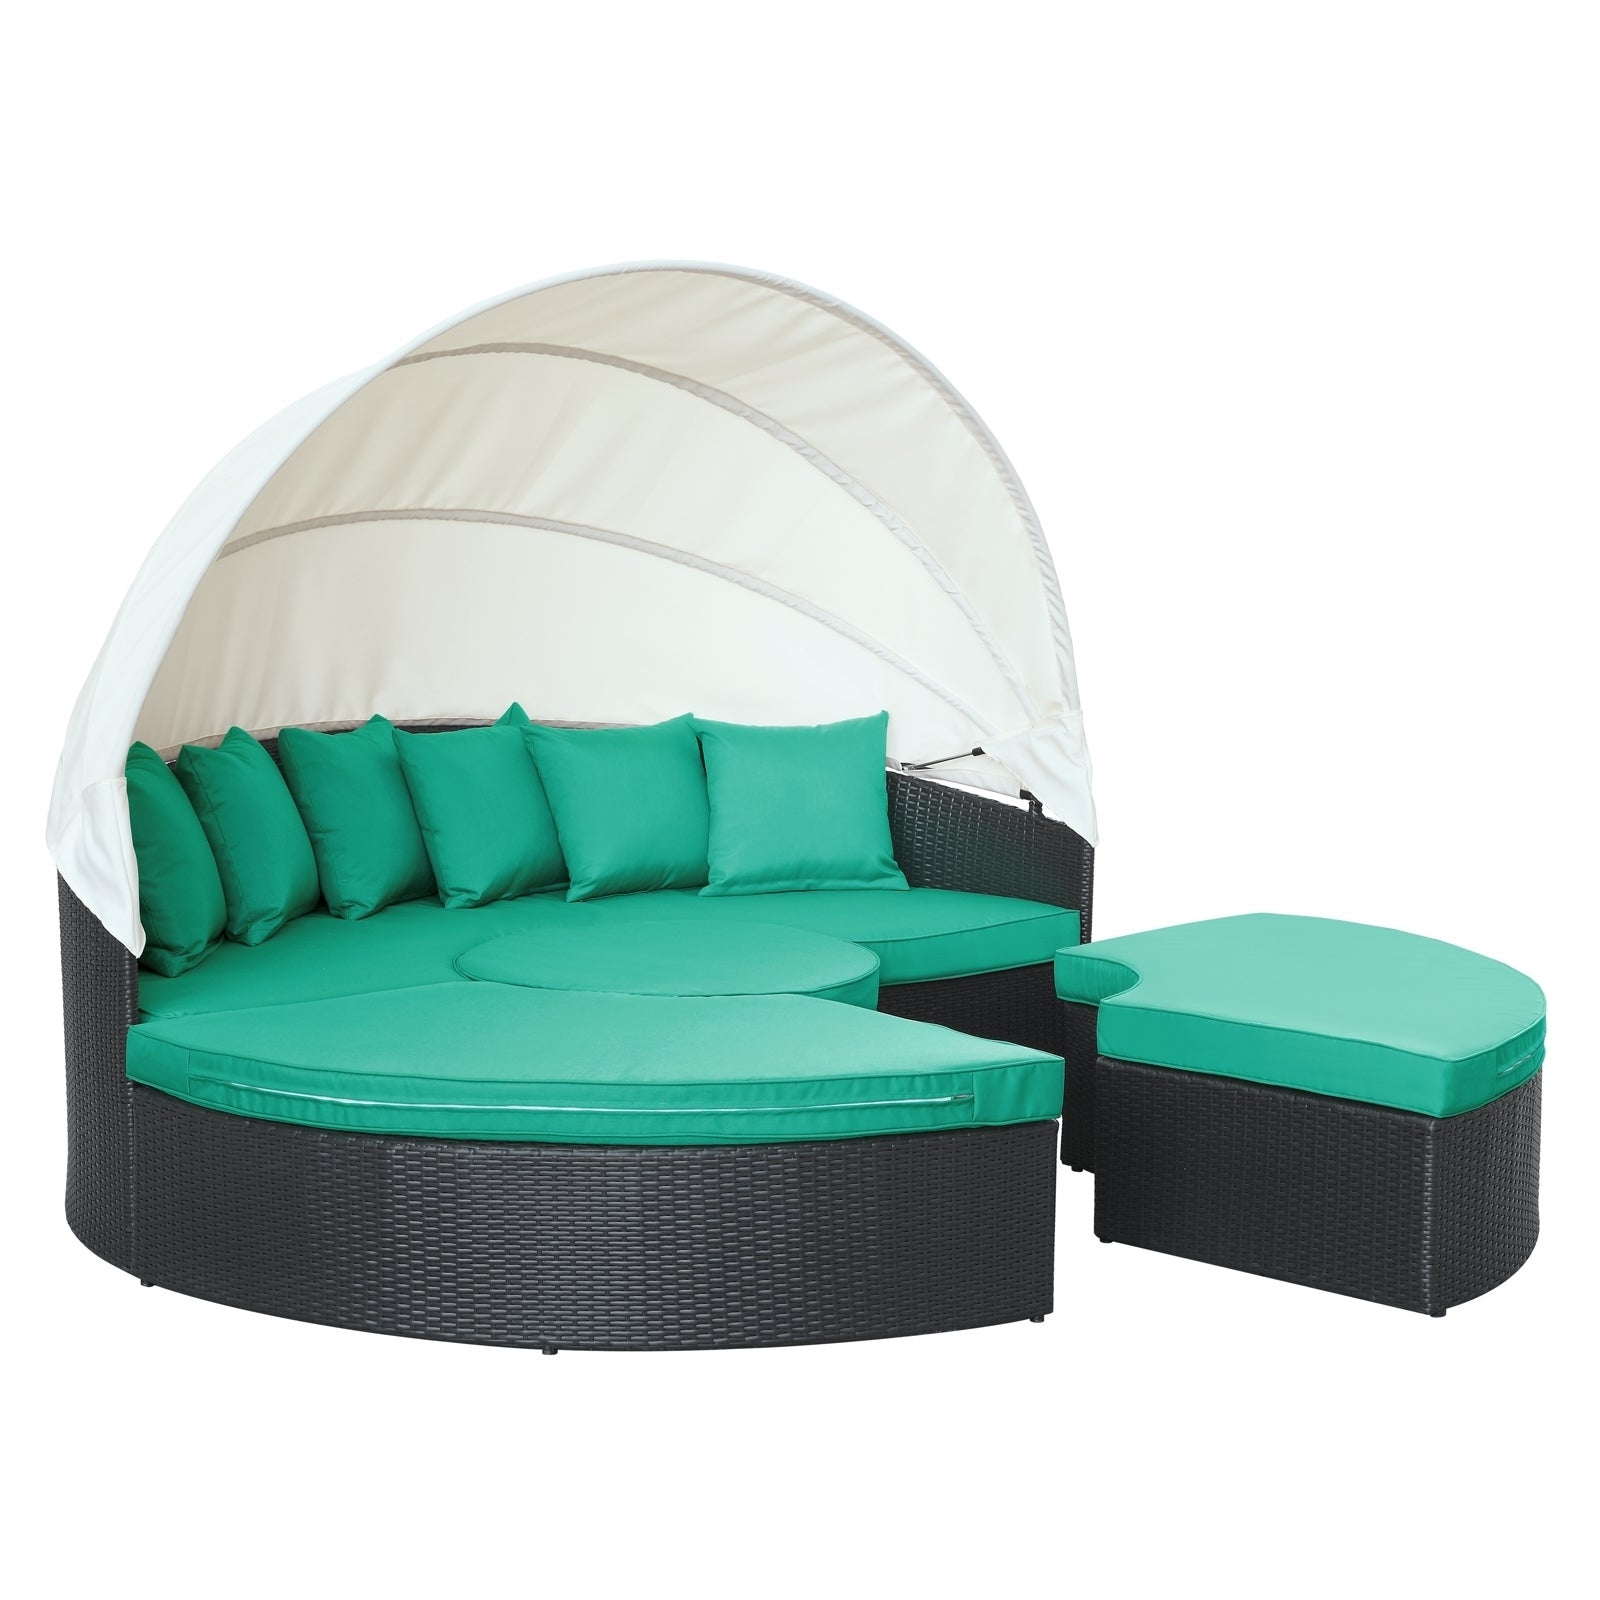 Attirant Quest Circular Outdoor Wicker Rattan Patio Daybed With Canopy   Free  Shipping Today   Overstock.com   16055559